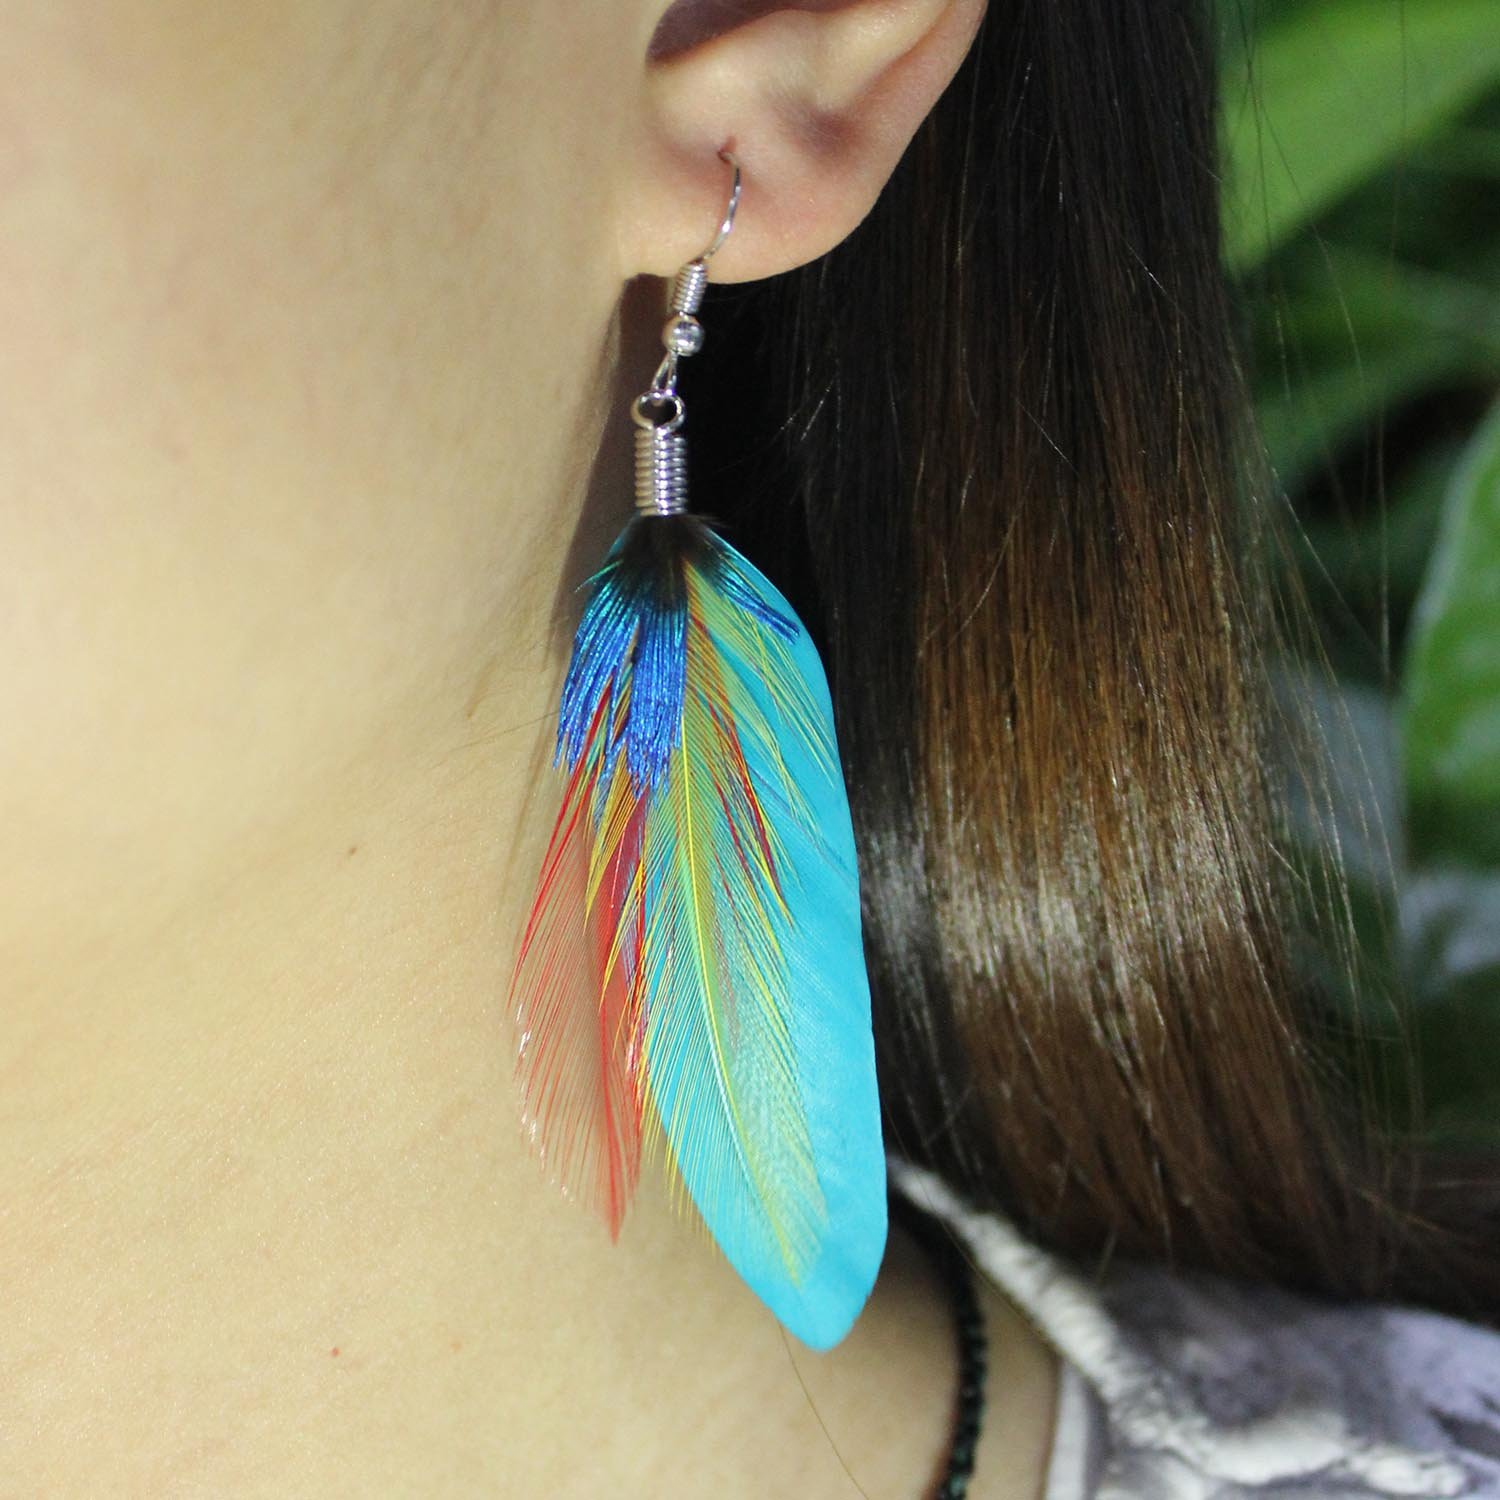 Natural Fashion Feather Theme Earring Boho Handmade Super Light Peacock Feather Danging Earrings for Women Girls Valentines day Mothers day Gift